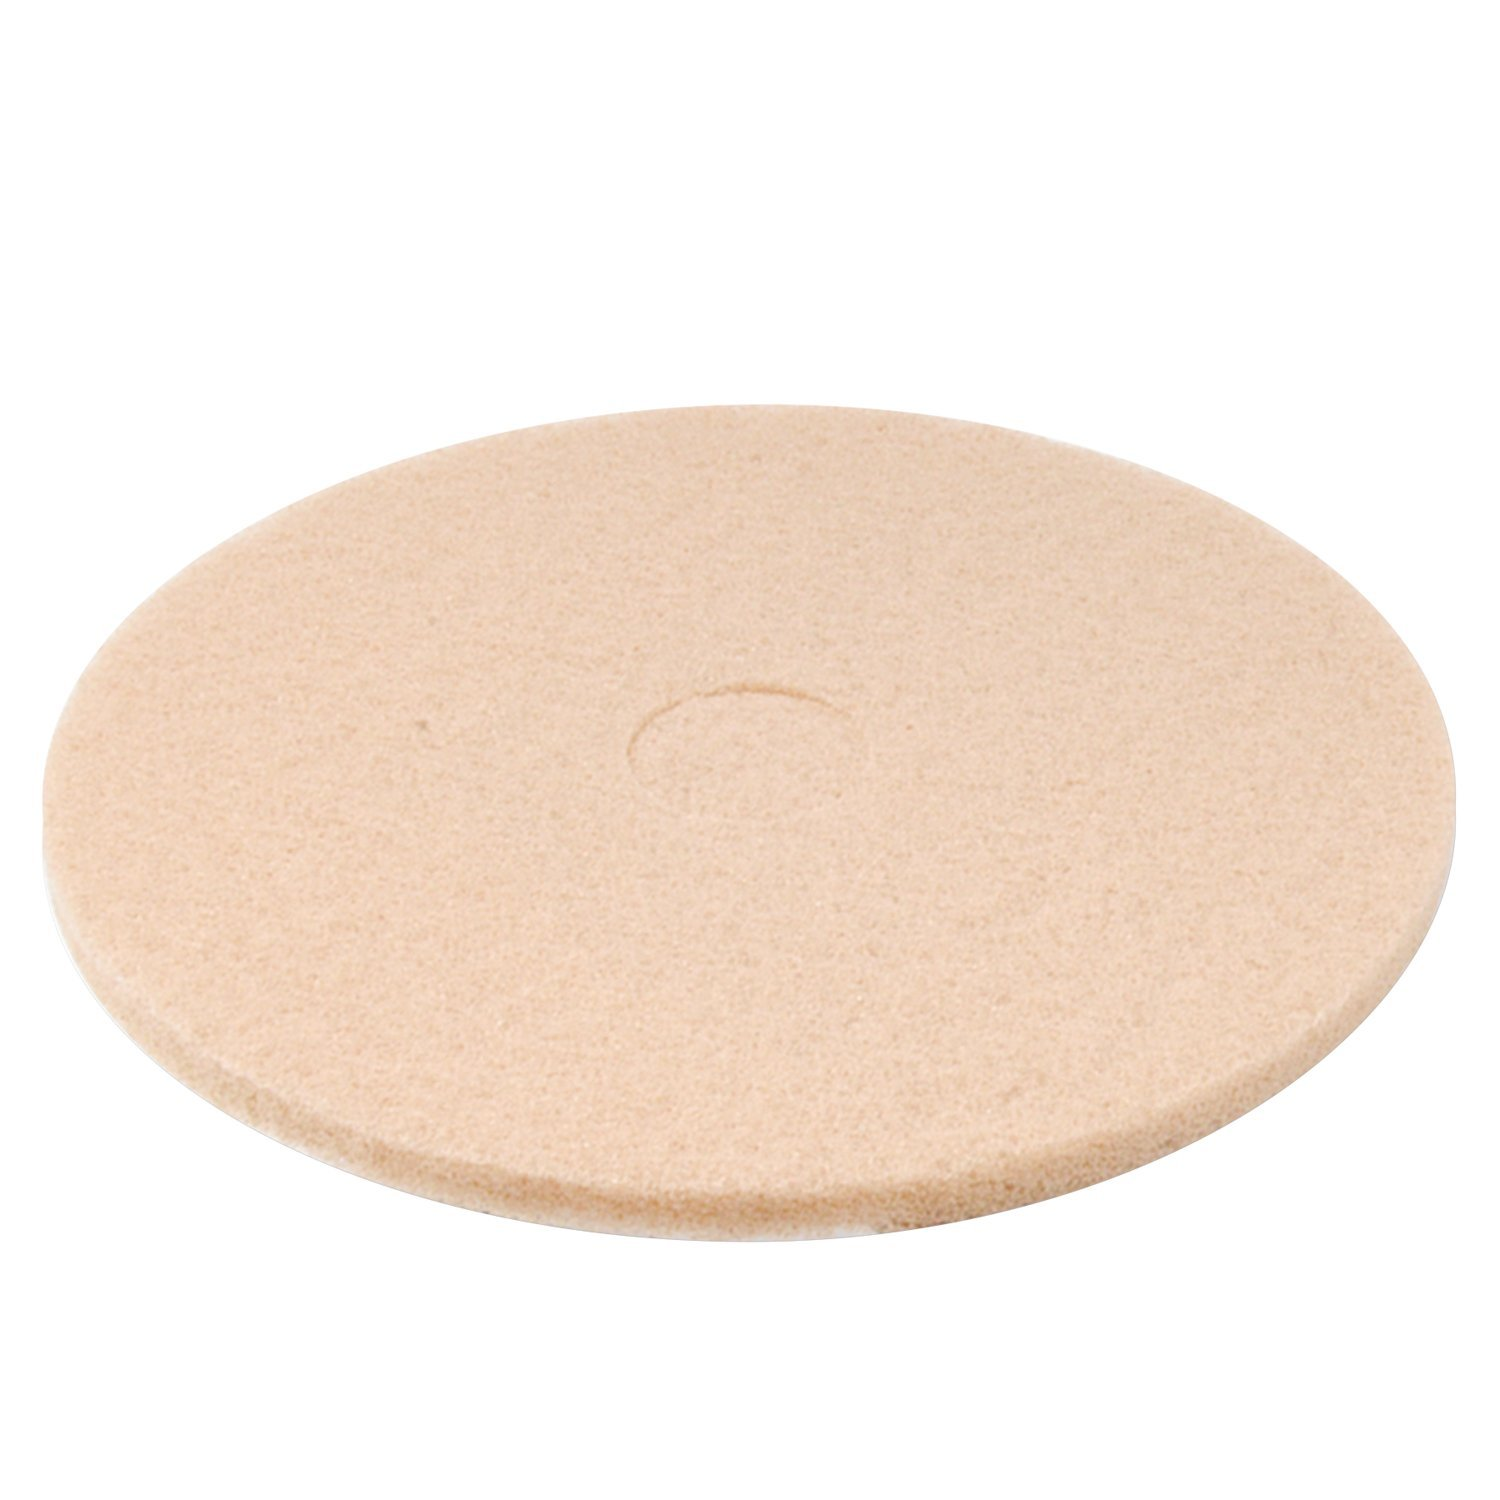 Premiere Pads 4020ULT Synthetic Fiber Ultra High-Speed Floor Pad, 20'' Diameter, For High Gloss, Champagne (Case of 5)